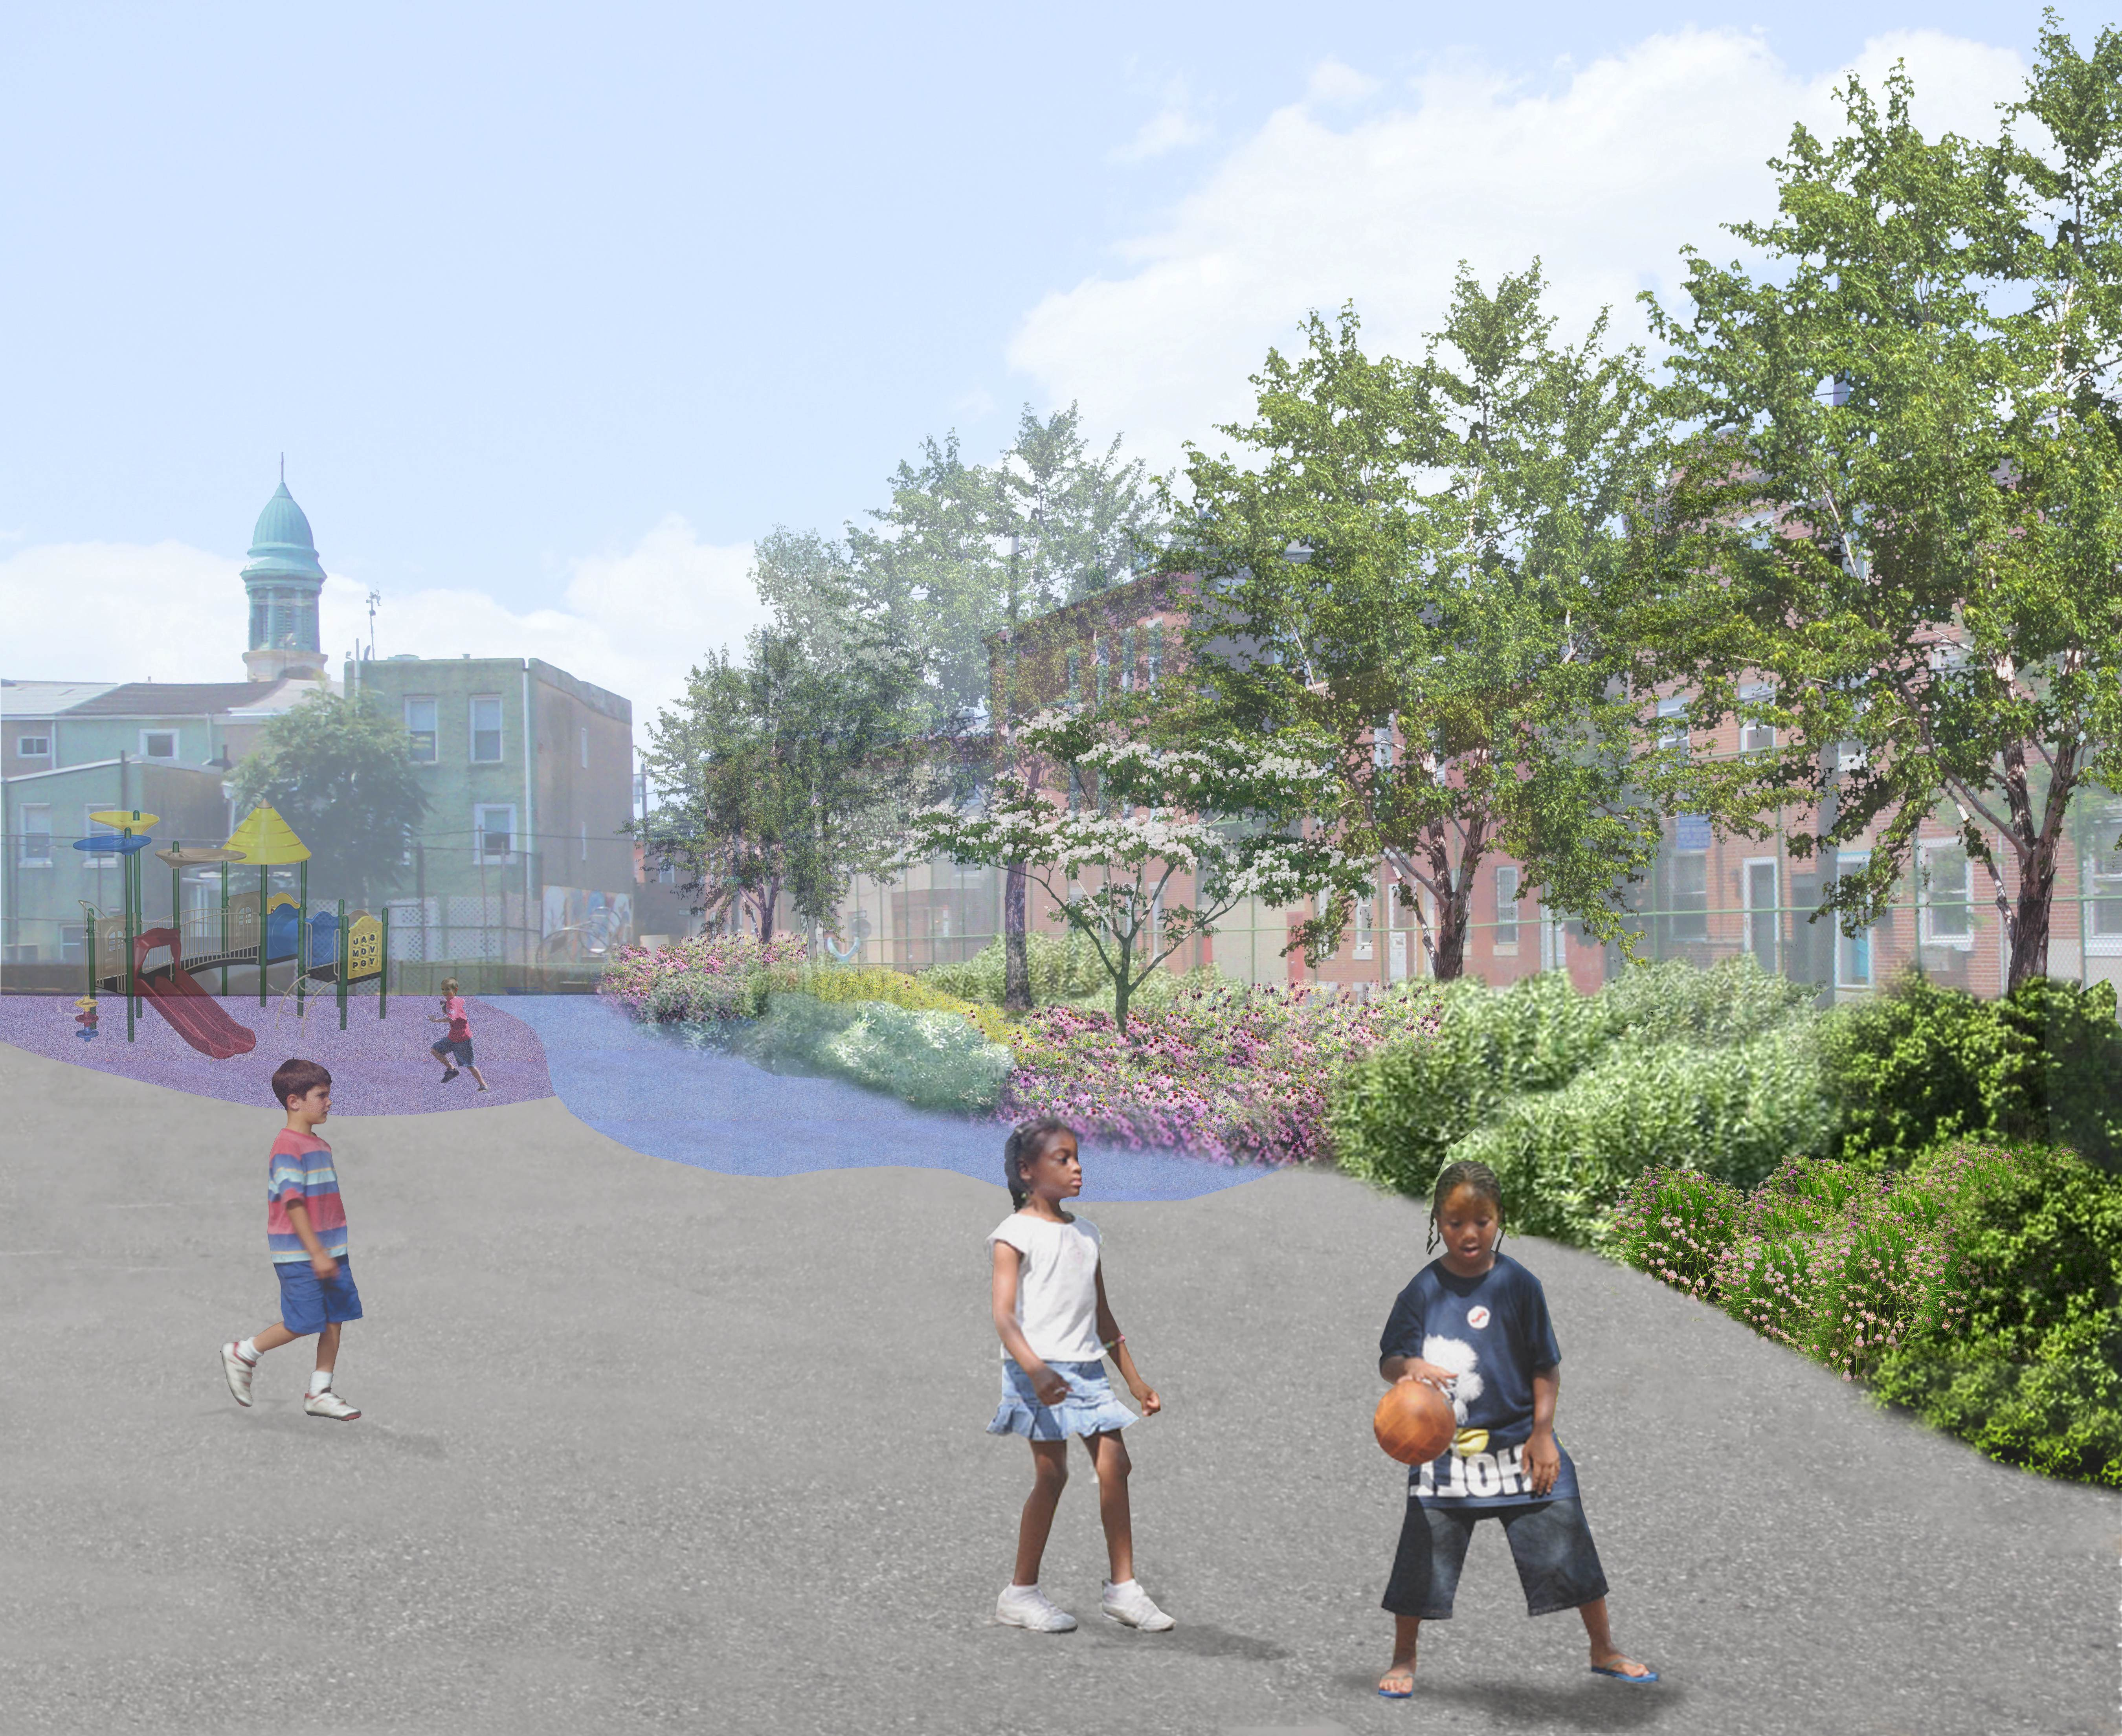 Three schools will receive the full PWD green stormwater management makeover, Rachel Ahern for the Philadelphia Water Department